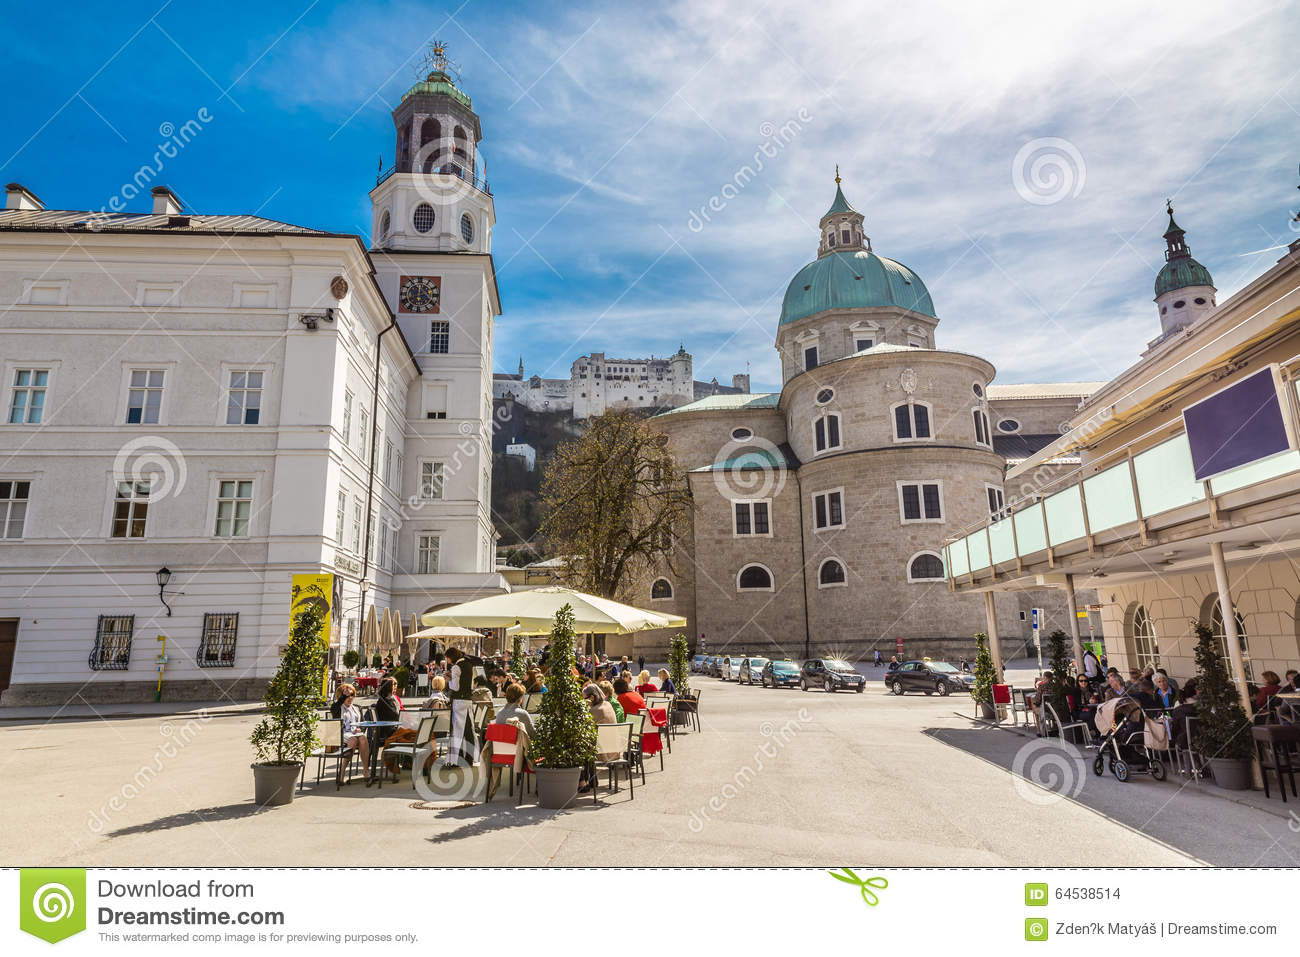 Cathedral,Fortress And Glockenspiel.